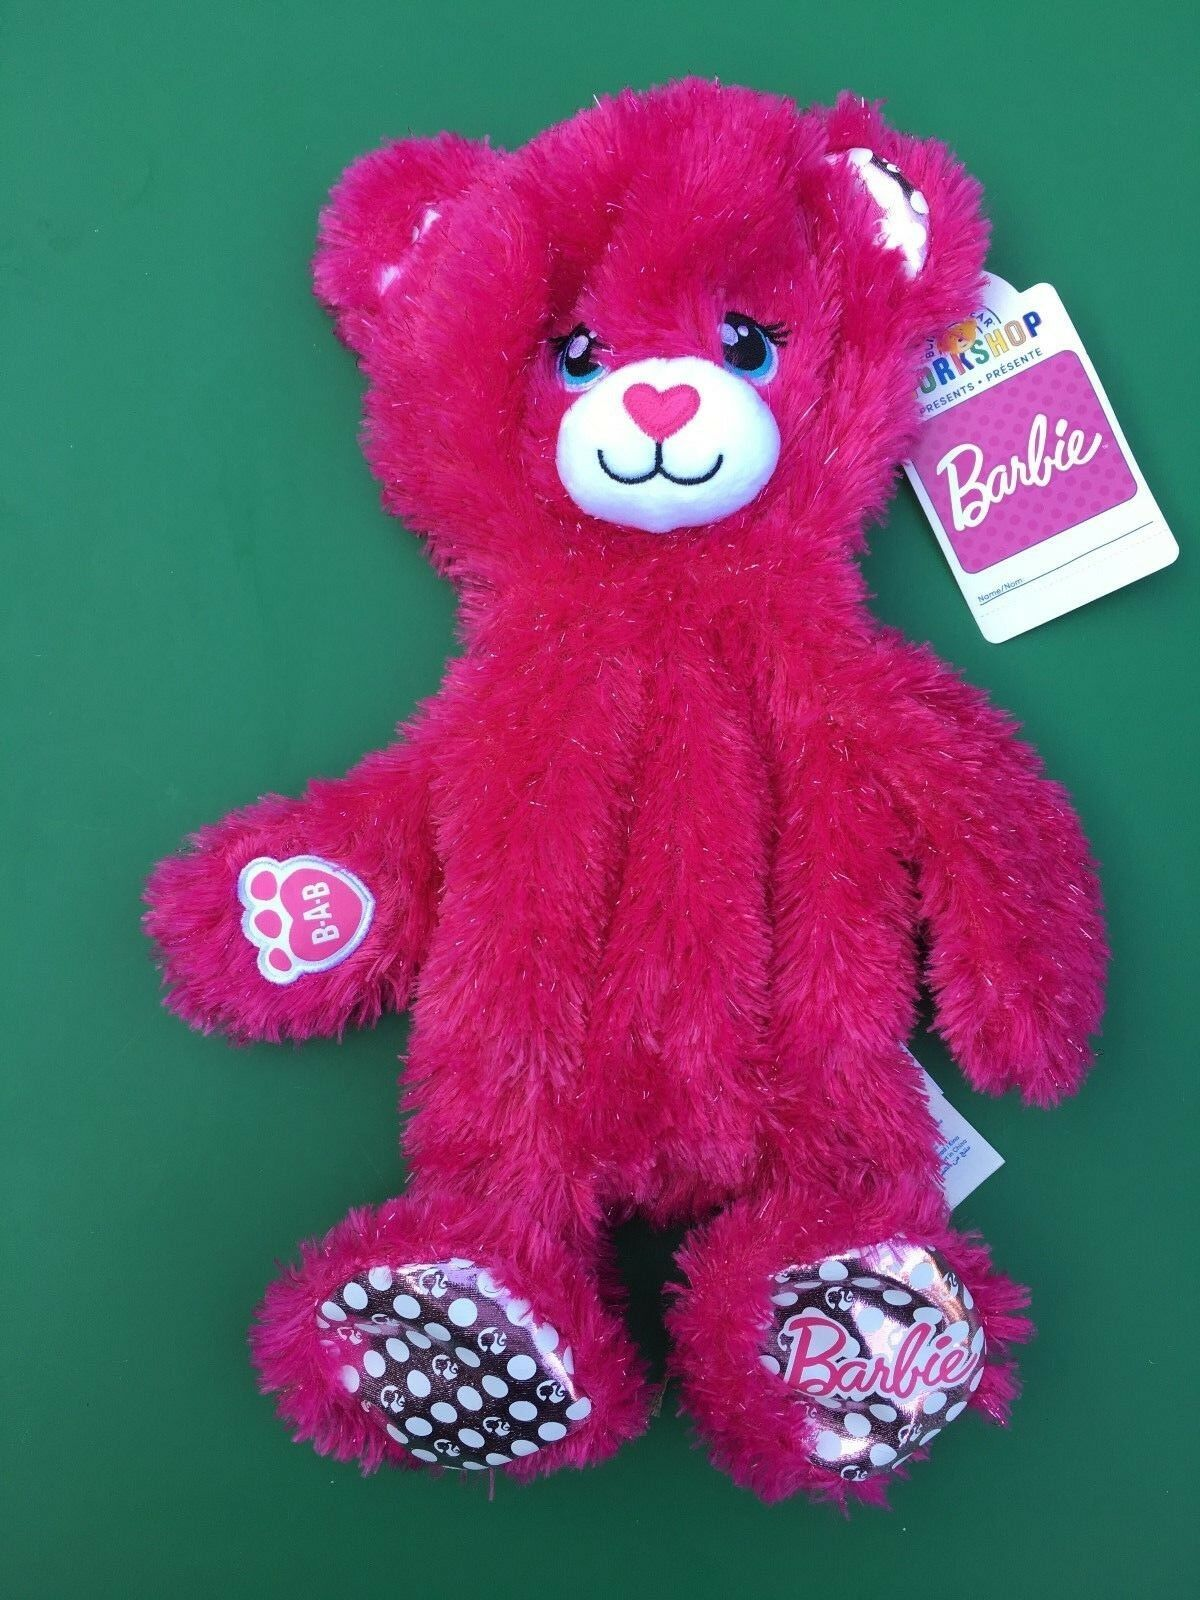 Build a Bear 16  Barbie Bear Plush Toy - Unstuffed - NWT